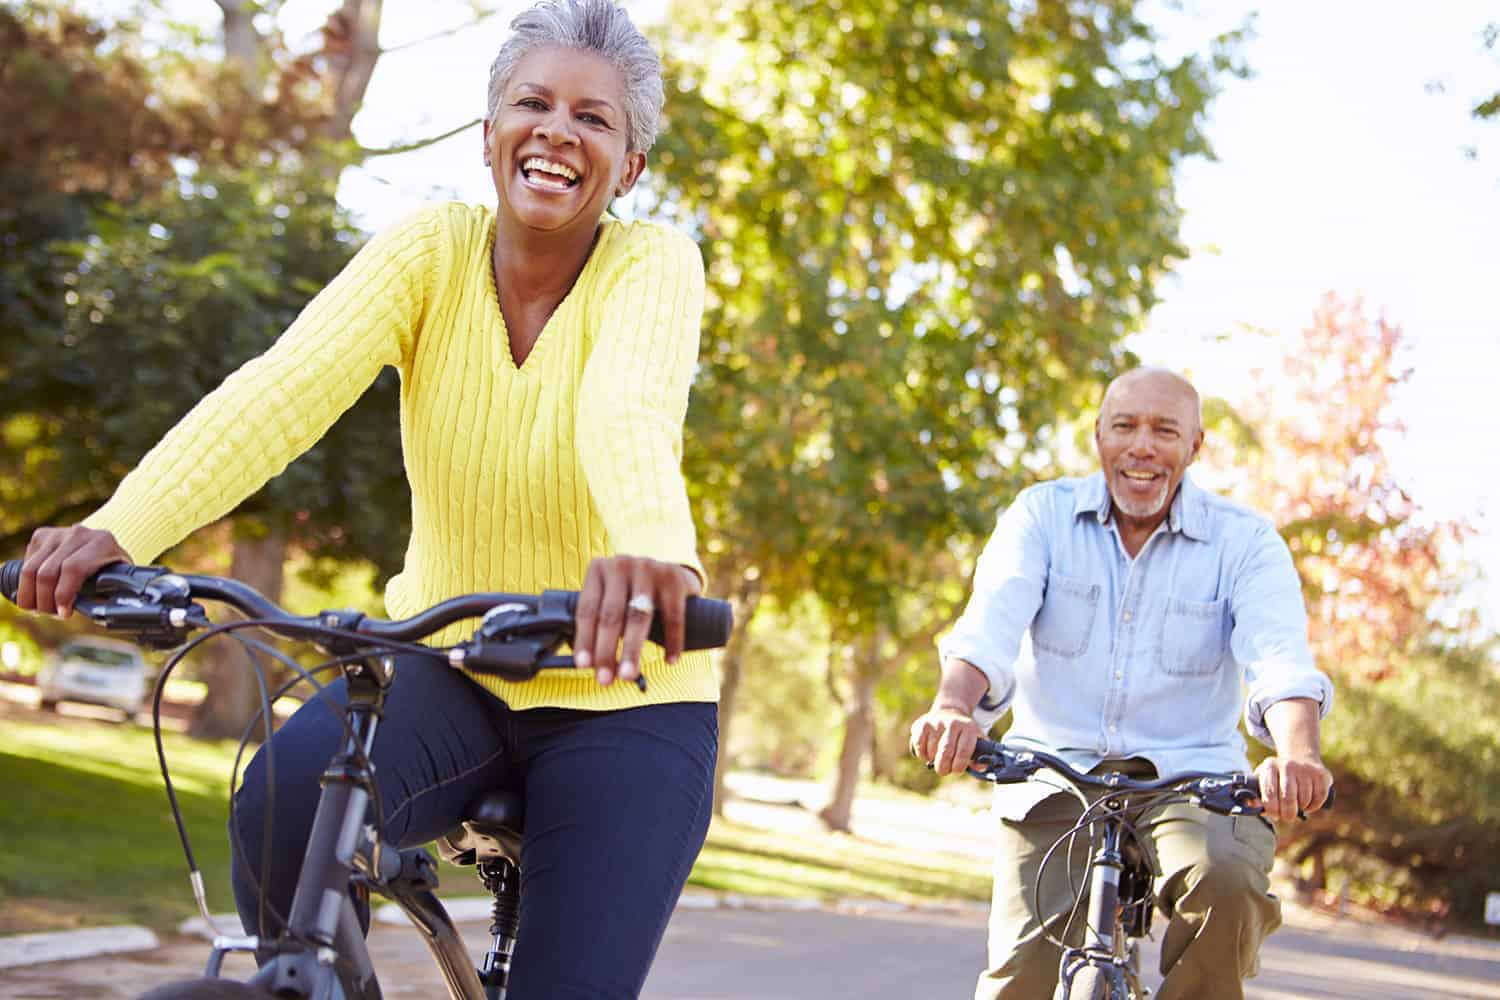 Older Couple ridding bicycles